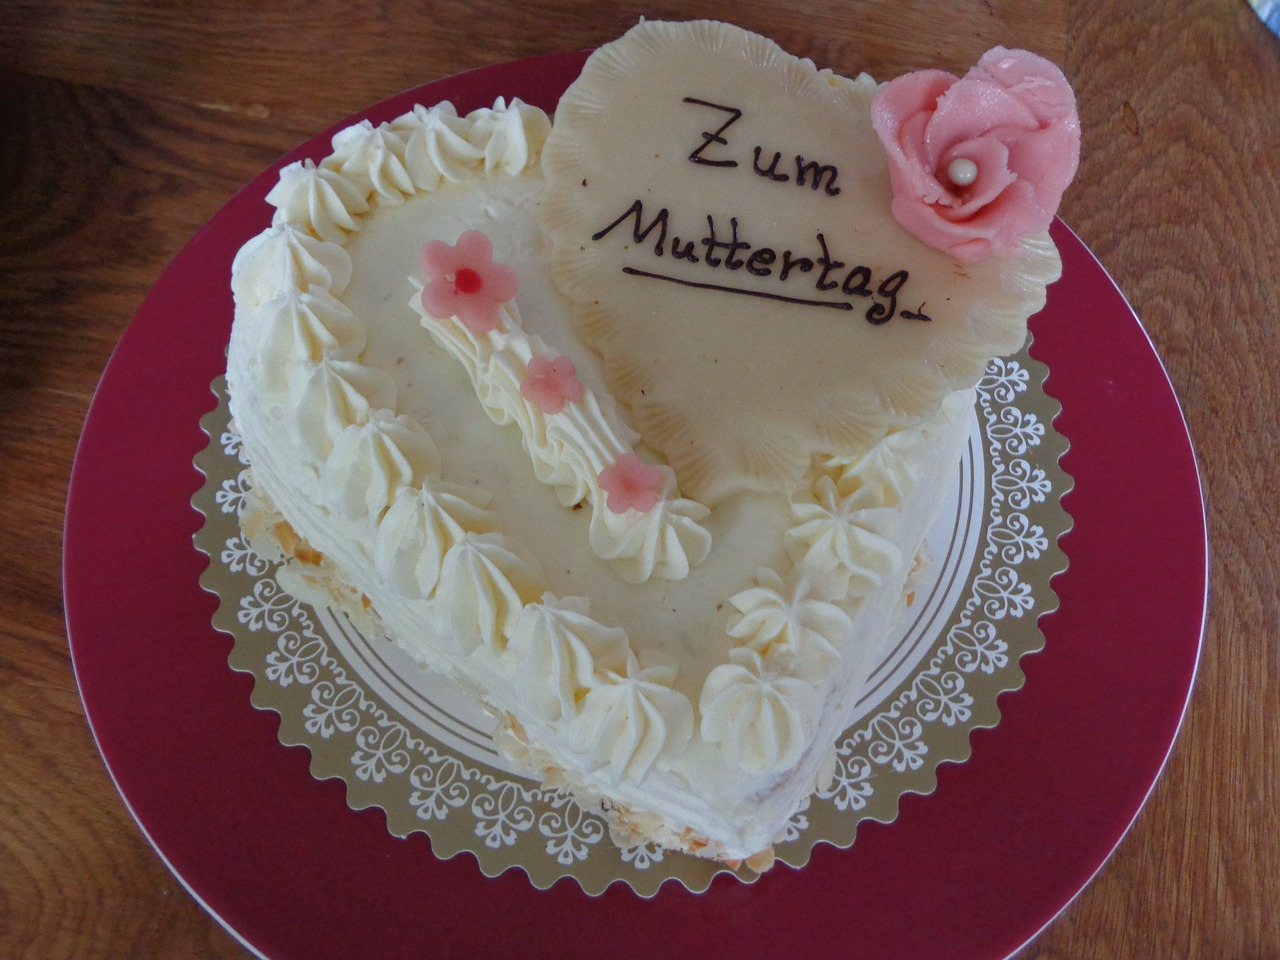 mother's day,cake,marzipan,rose,sweet,buttercream,heart,welcome,gift,greetings,red,about love for mother's day,free pictures, free photos, free images, royalty free, free illustrations, public domain